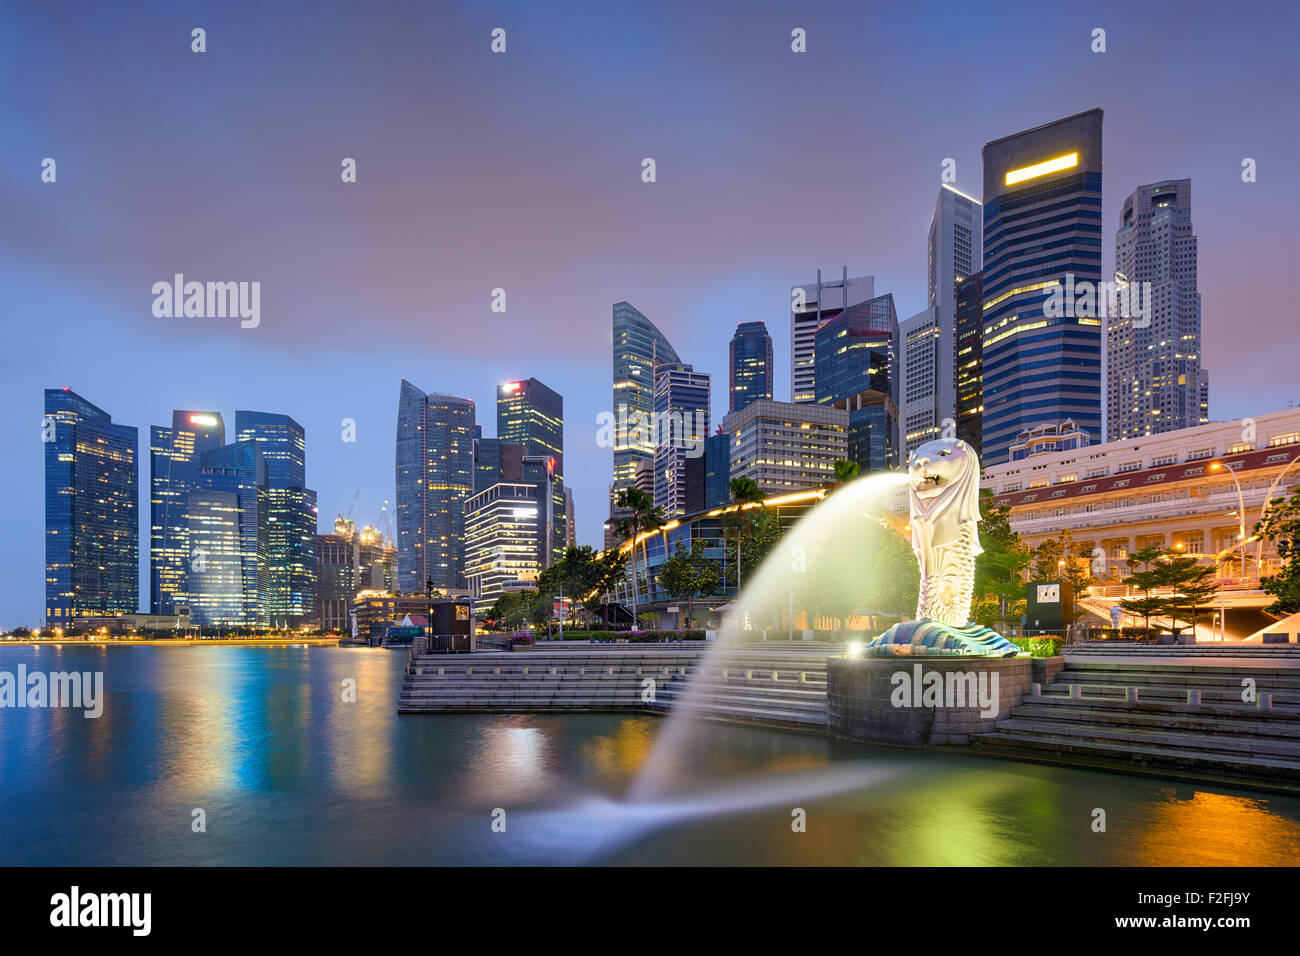 Singapour à la fontaine. Photo Stock